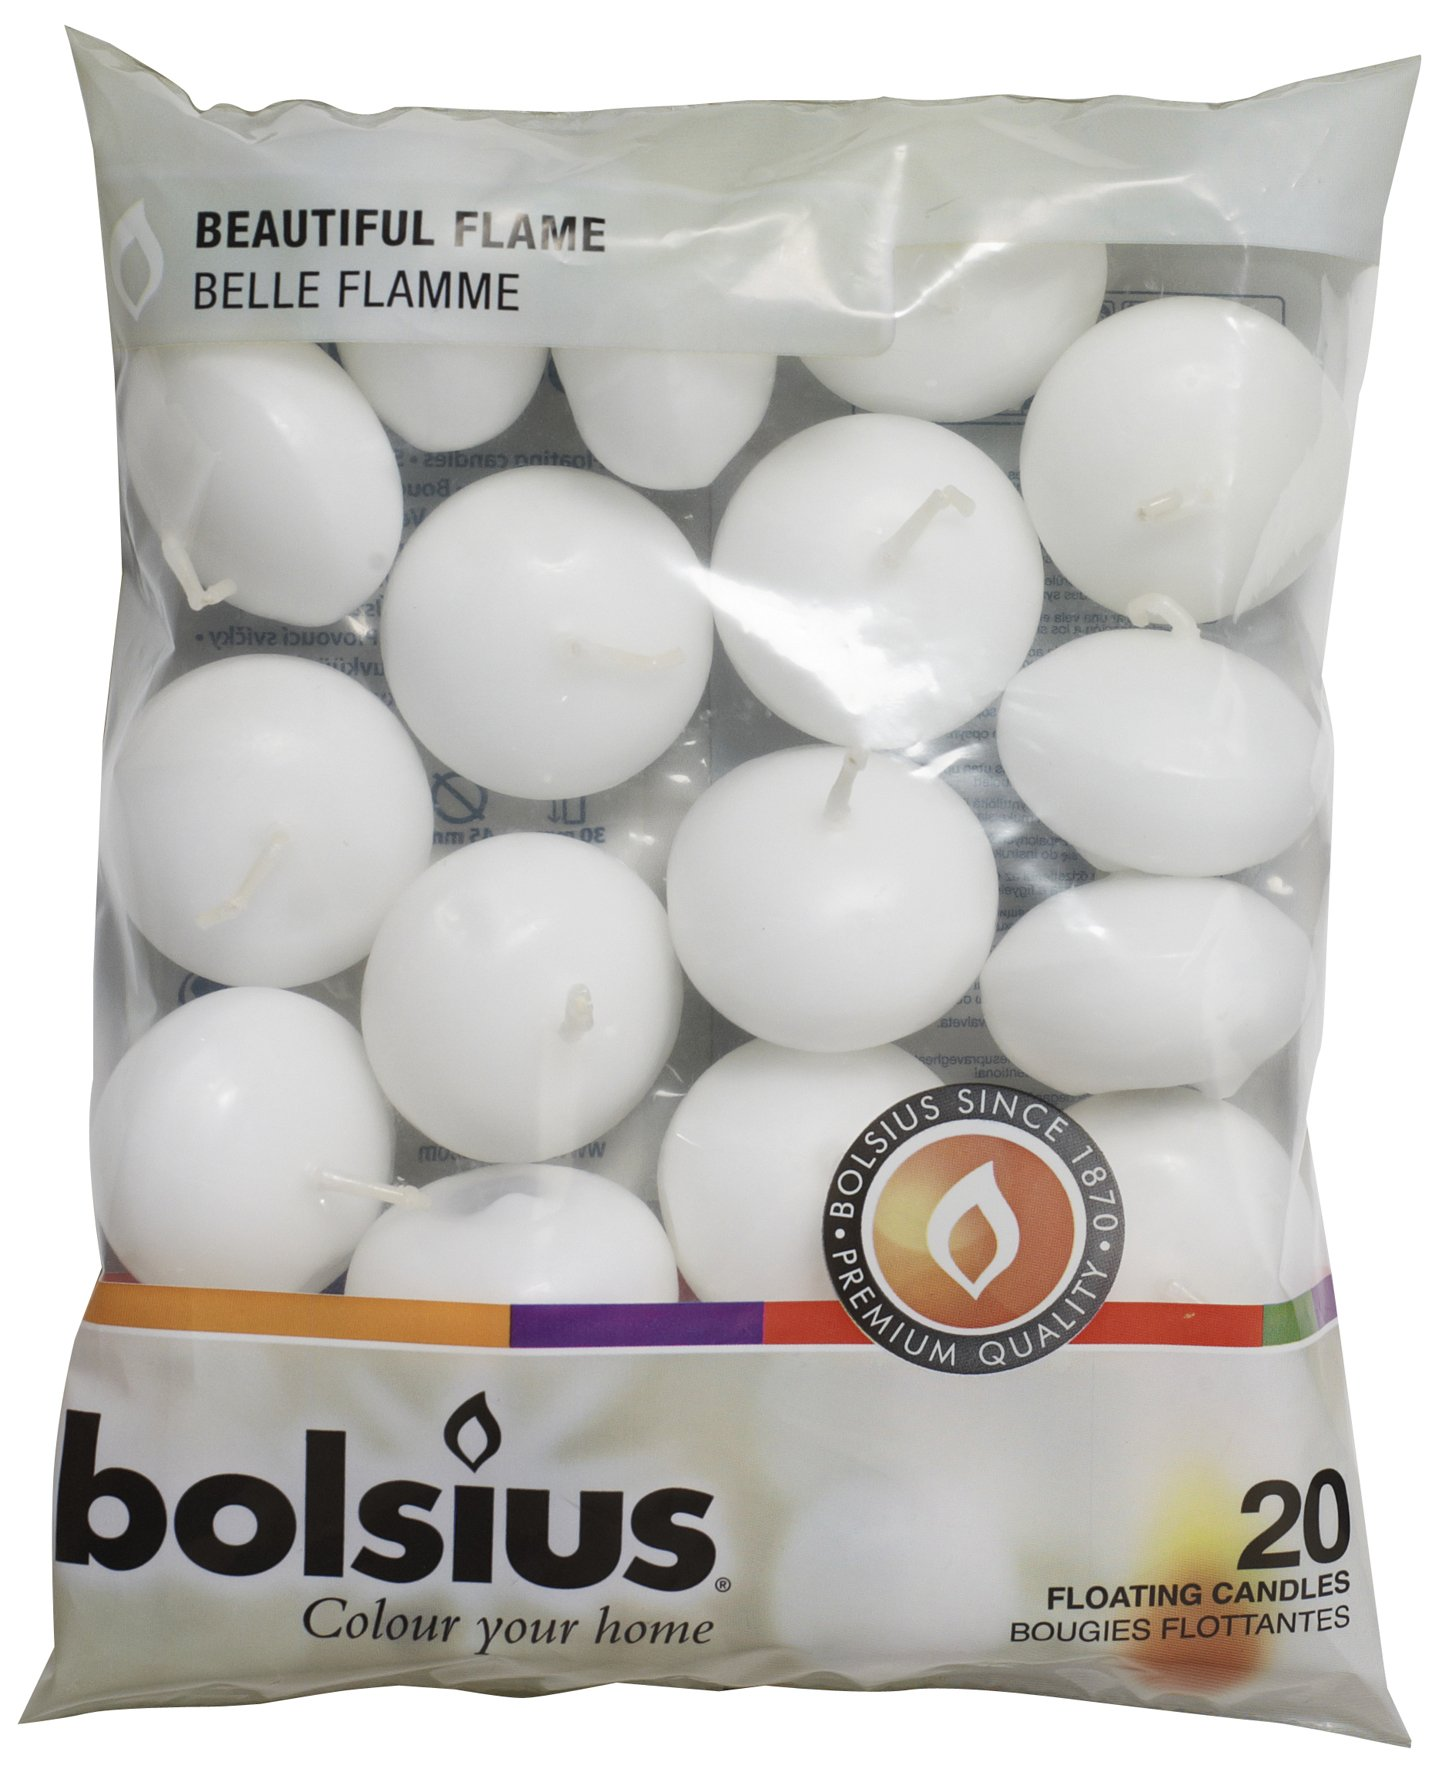 Bolsius Unscented Floating Candles – Set of 20 White Floating Candles – Cute Elegant Burning Candles – Candles Nice Smooth Flame – Party Accessories